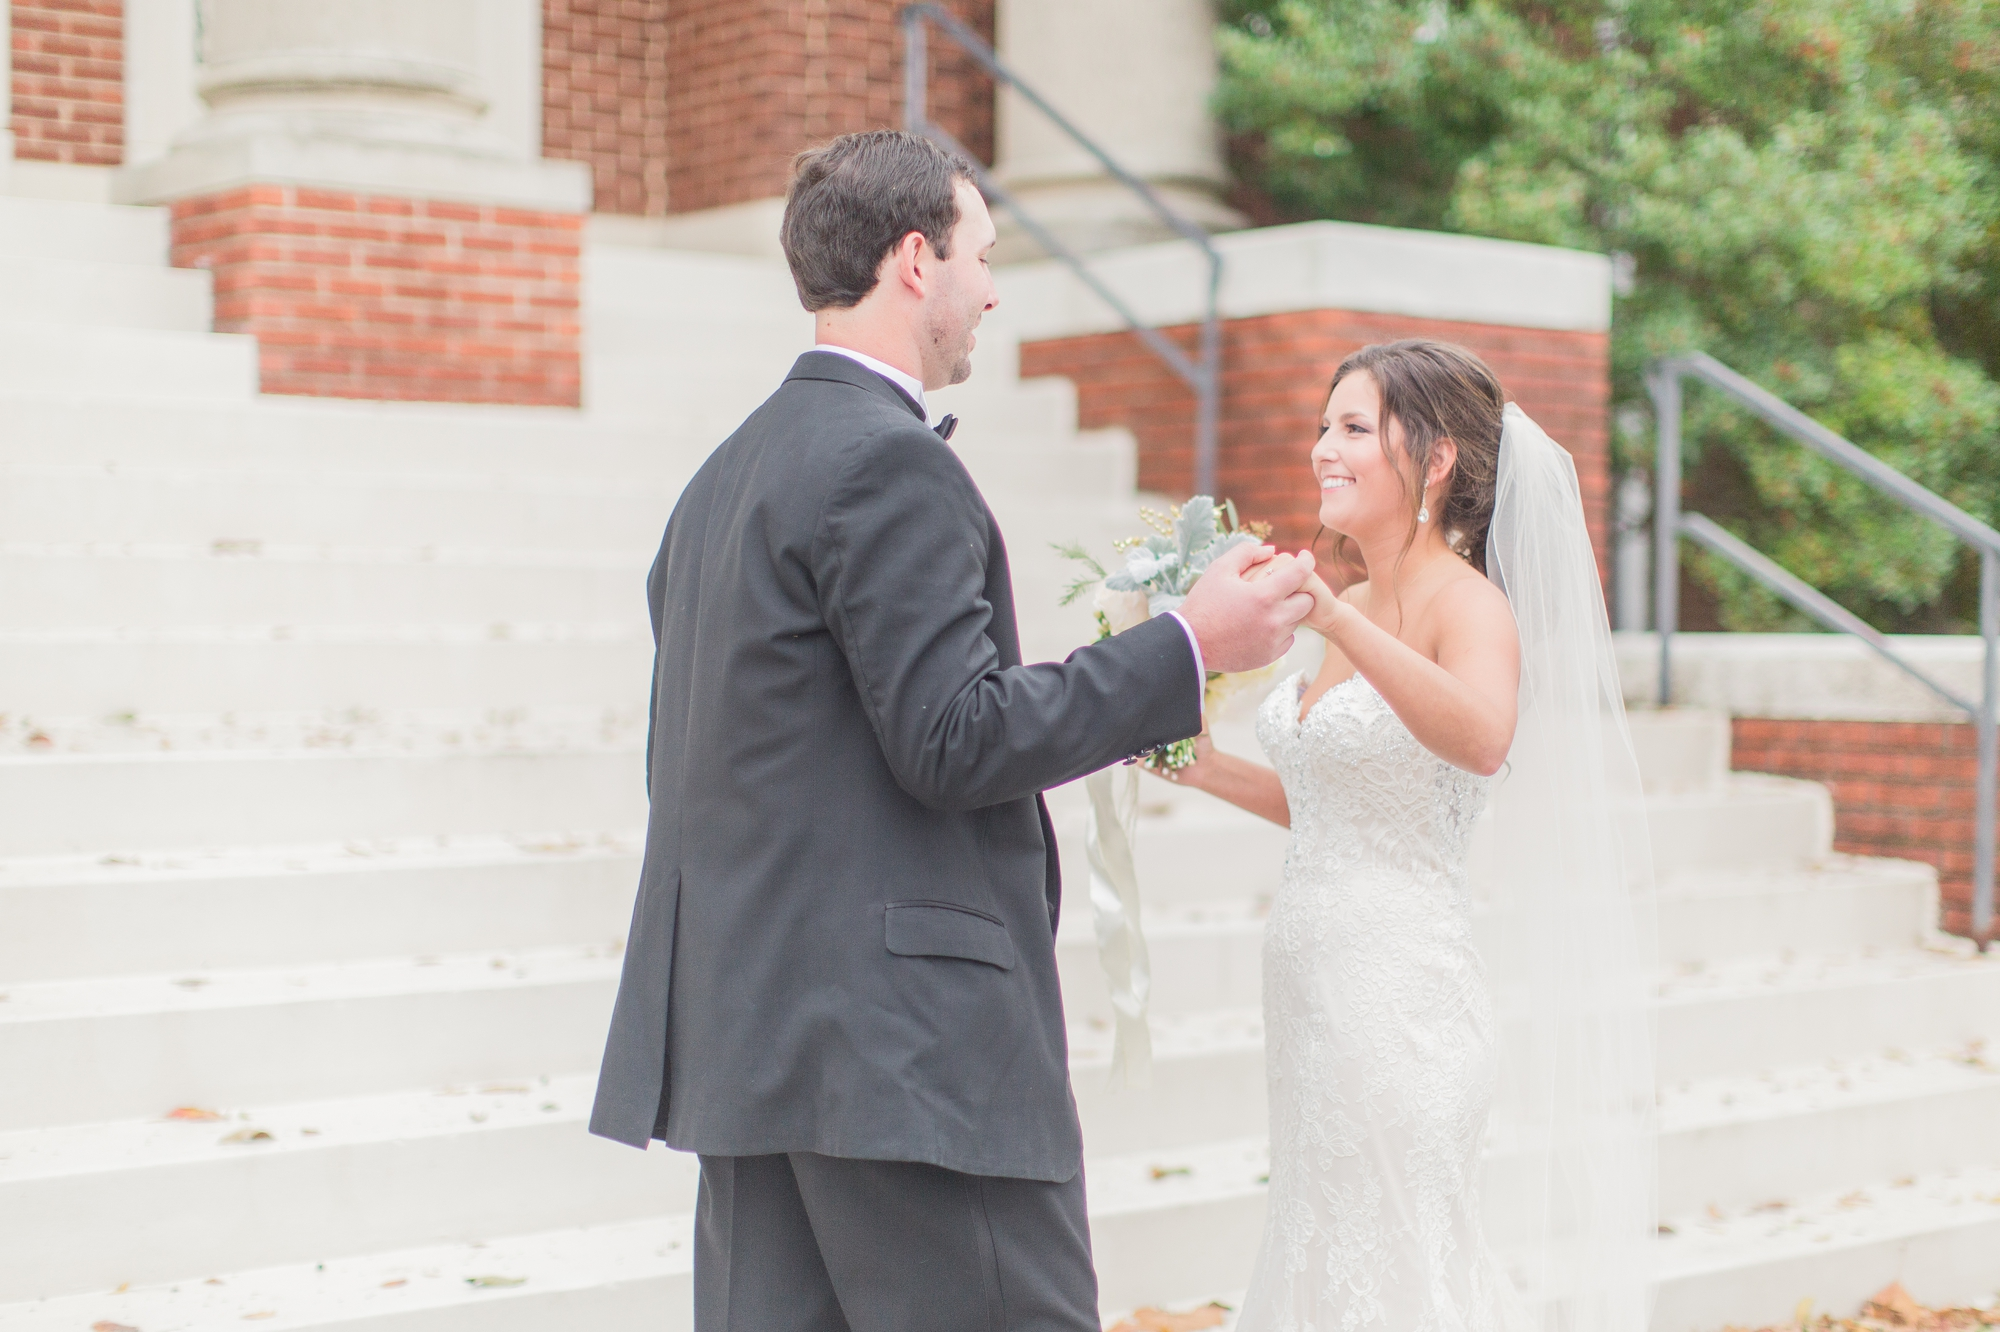 brozovich wedding 27.jpg